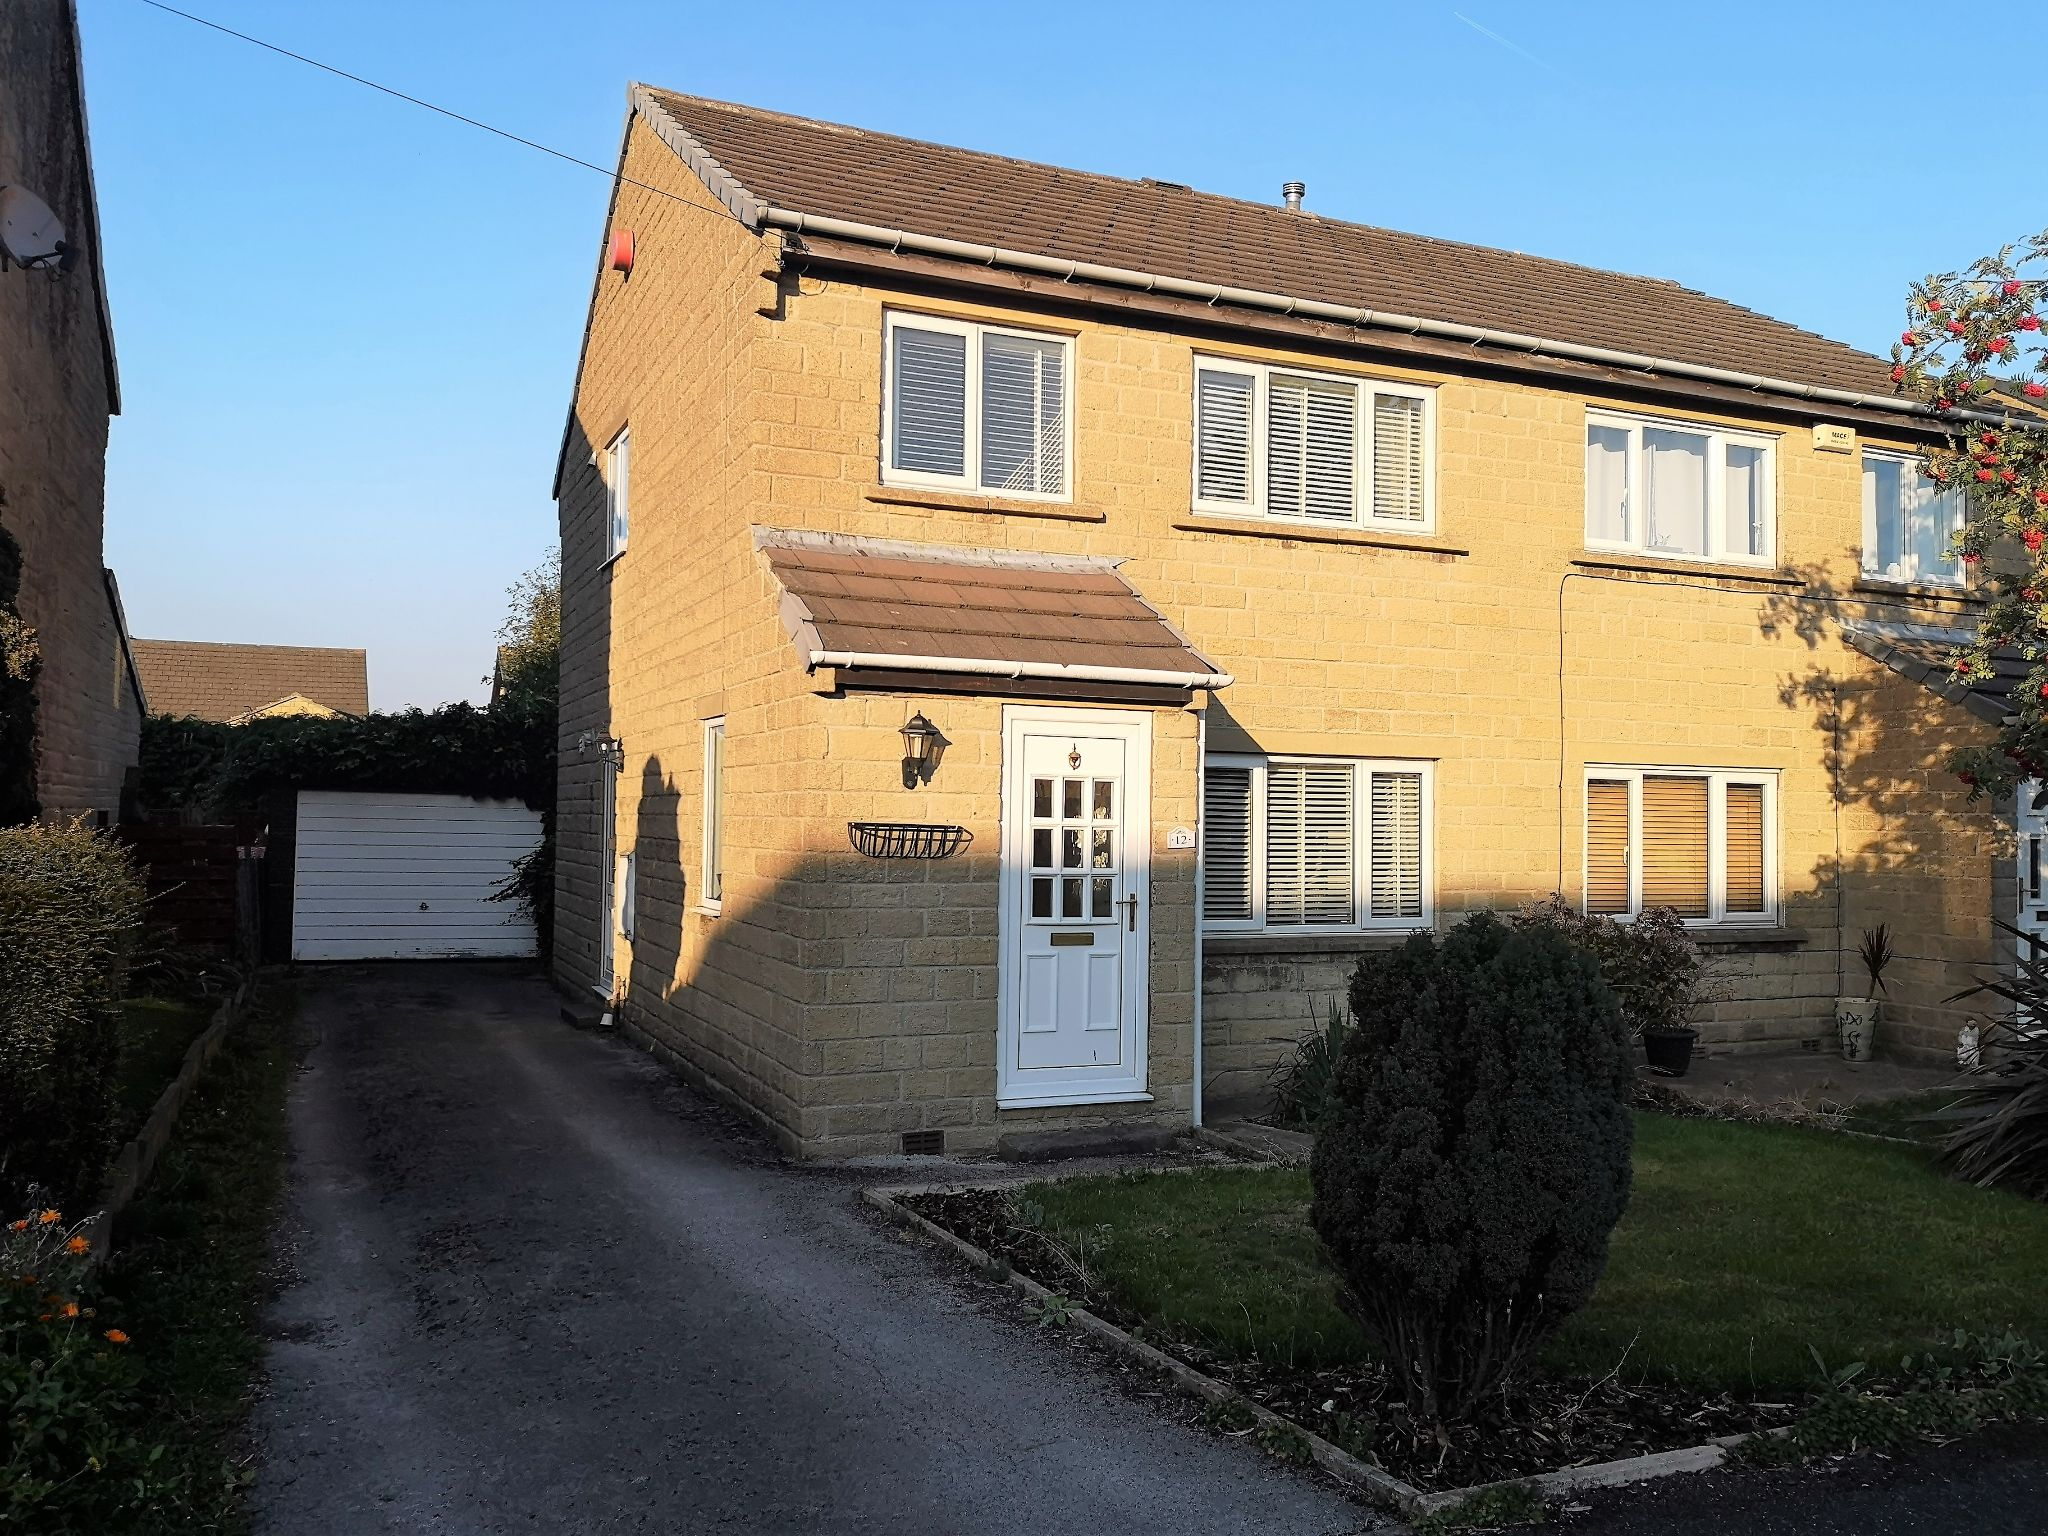 3 bedroom semi-detached house SSTC in Huddersfield - Photograph 7